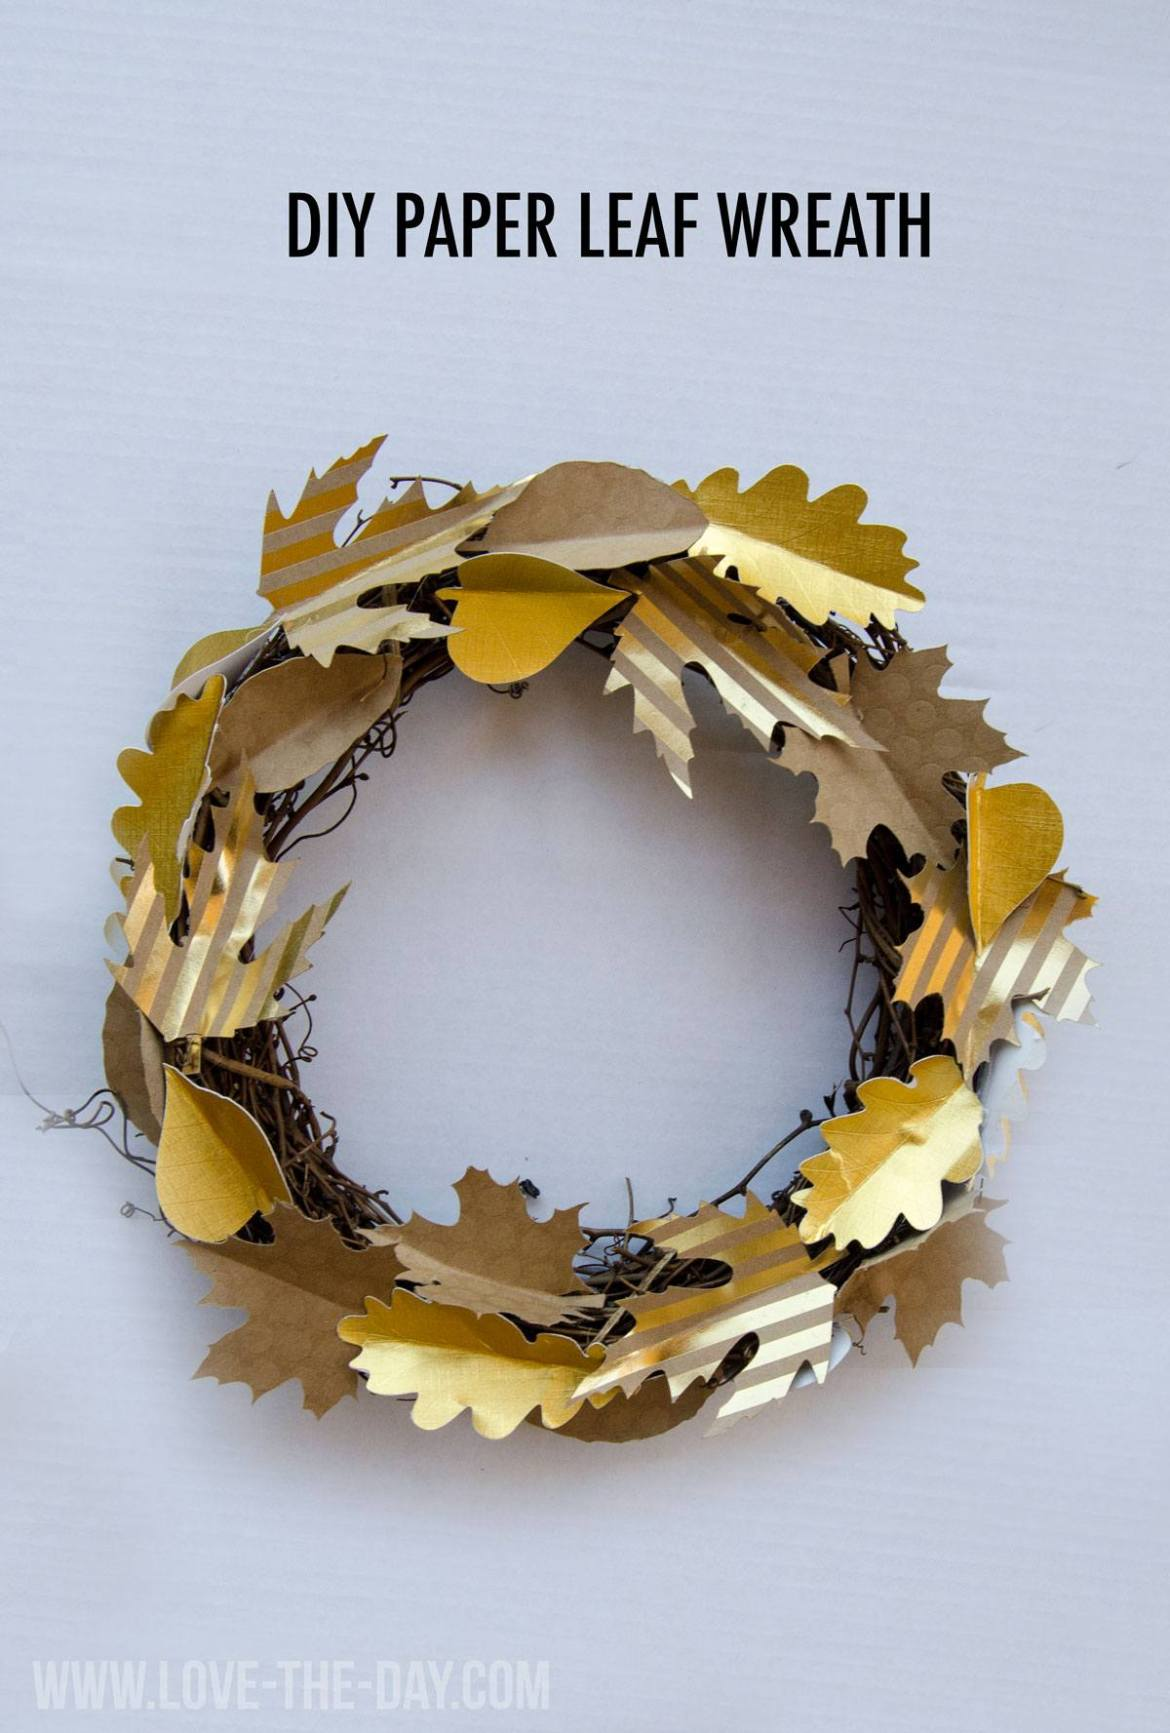 DIY Paper Leaf Wreath With Creativebug and Love The Day